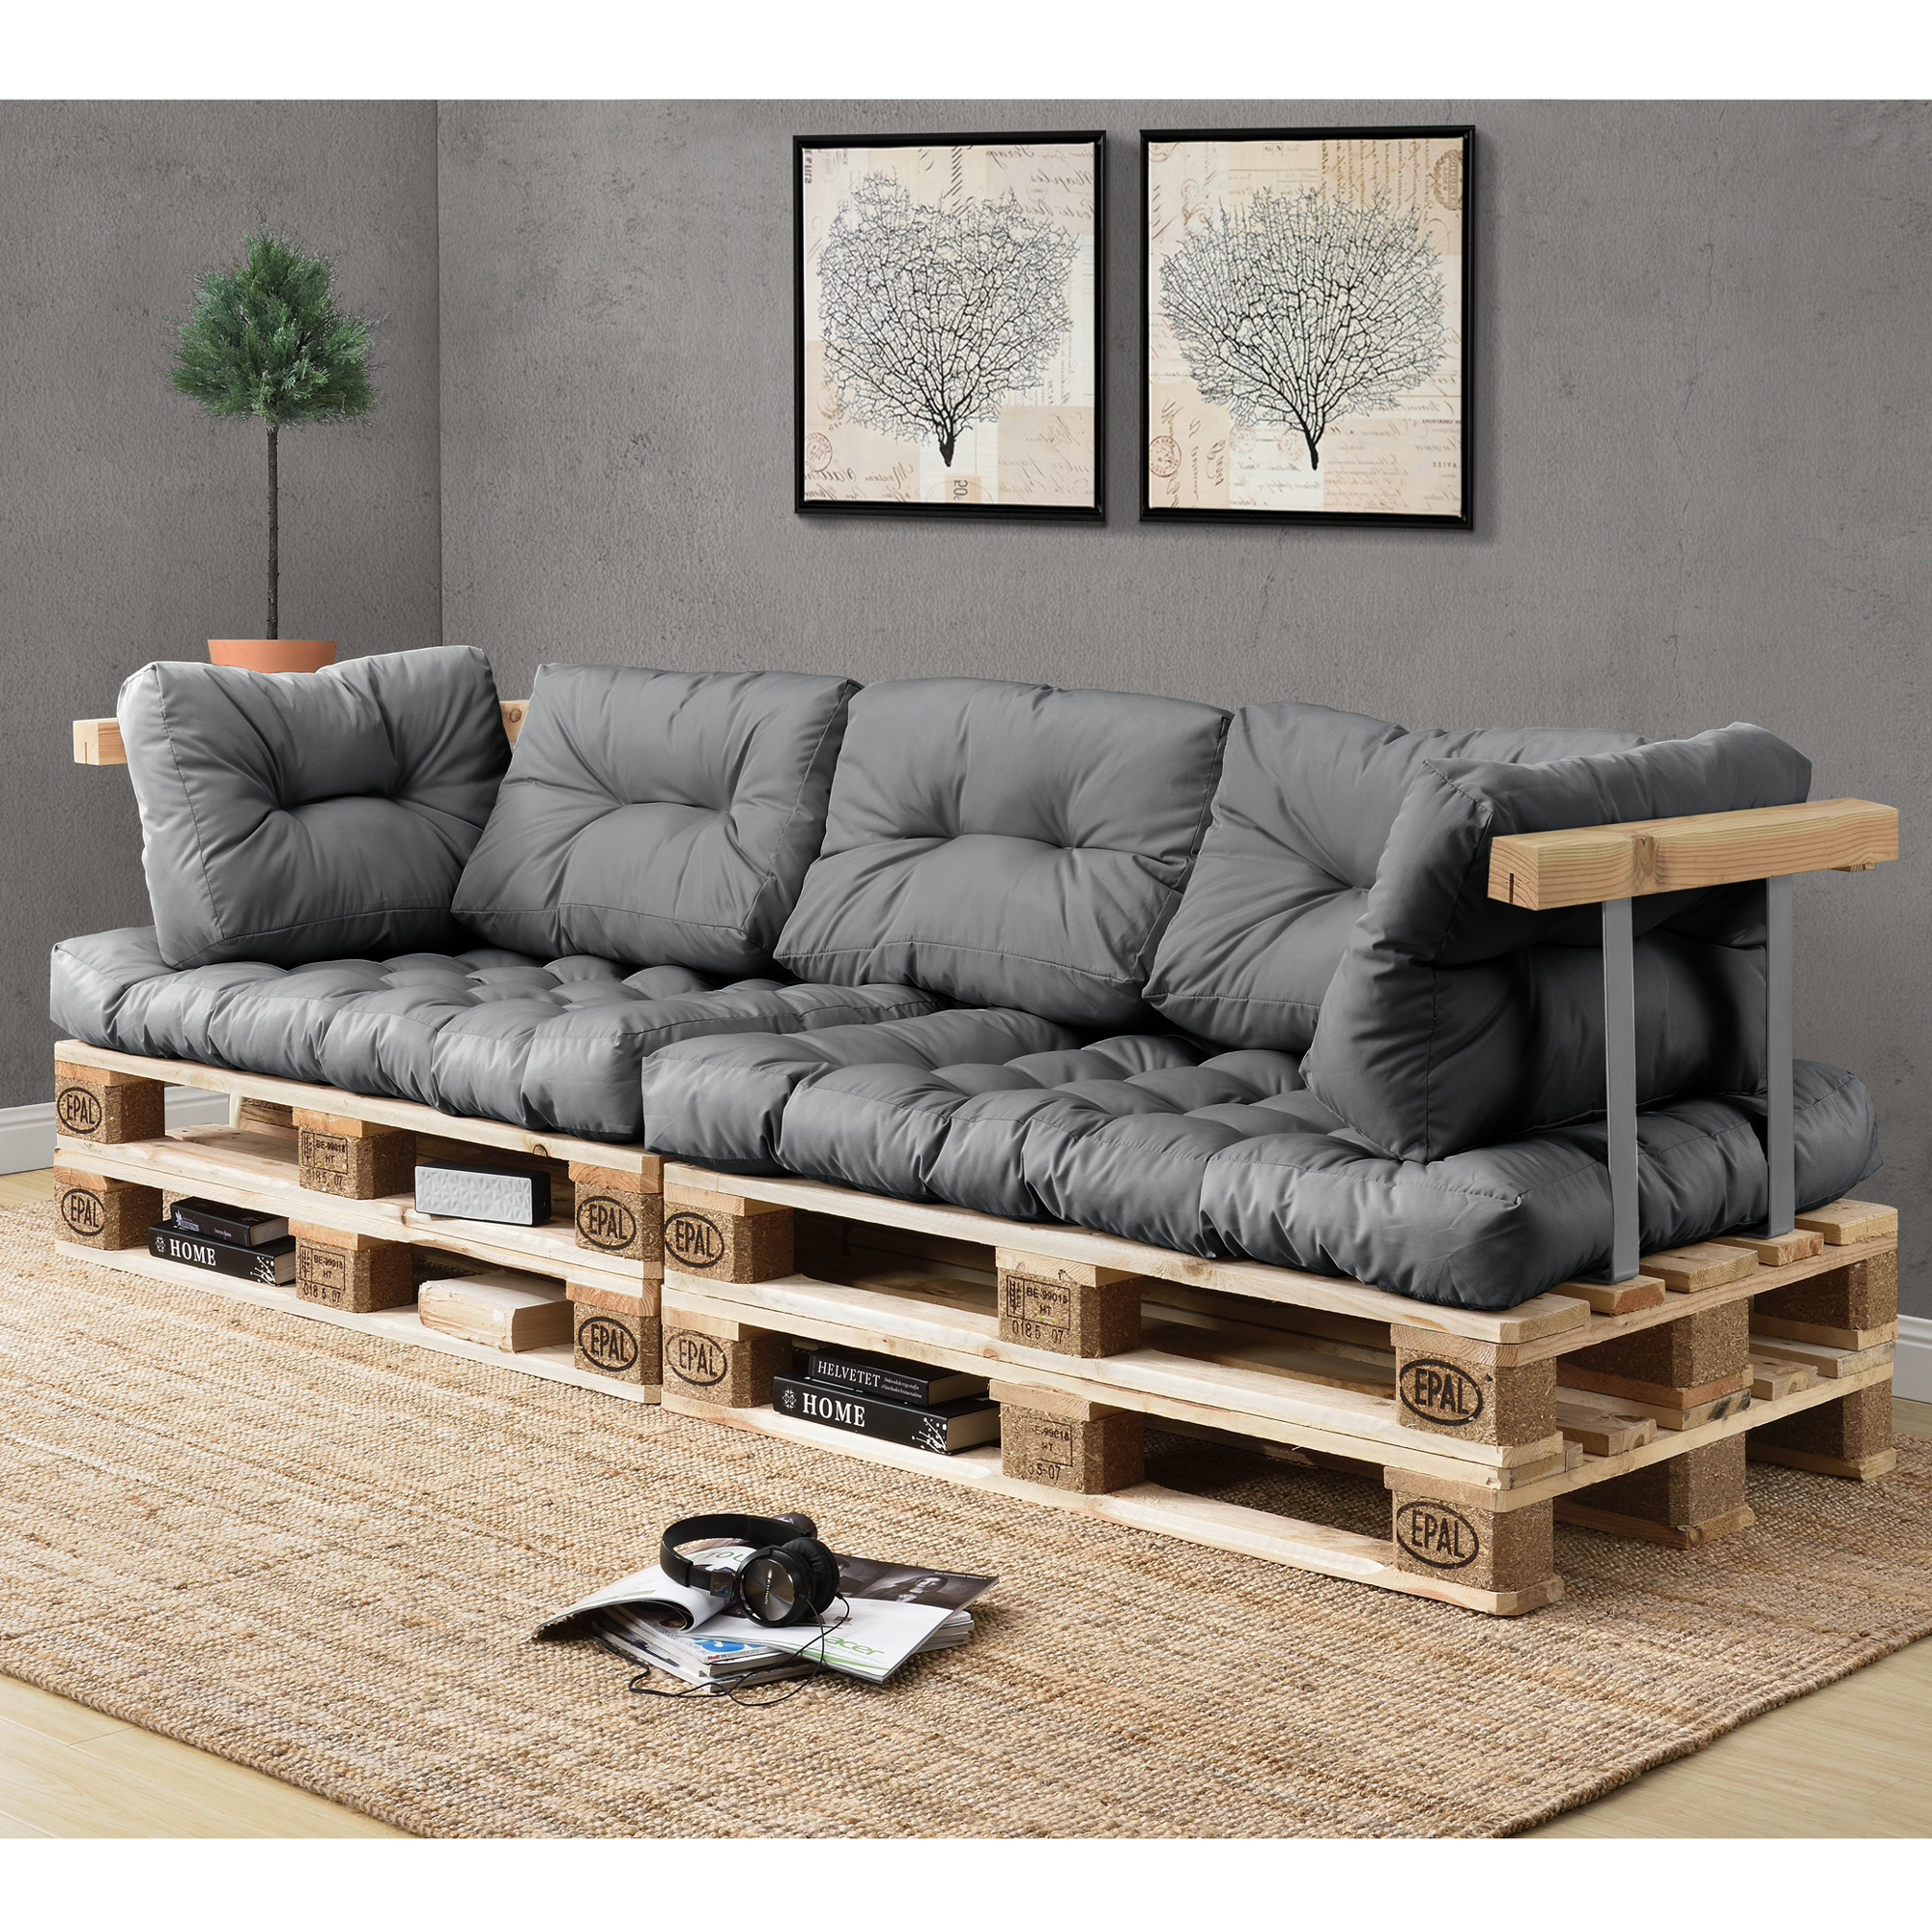 1x sitzpolster palettenkissen in outdoor paletten kissen sofa polster ebay. Black Bedroom Furniture Sets. Home Design Ideas